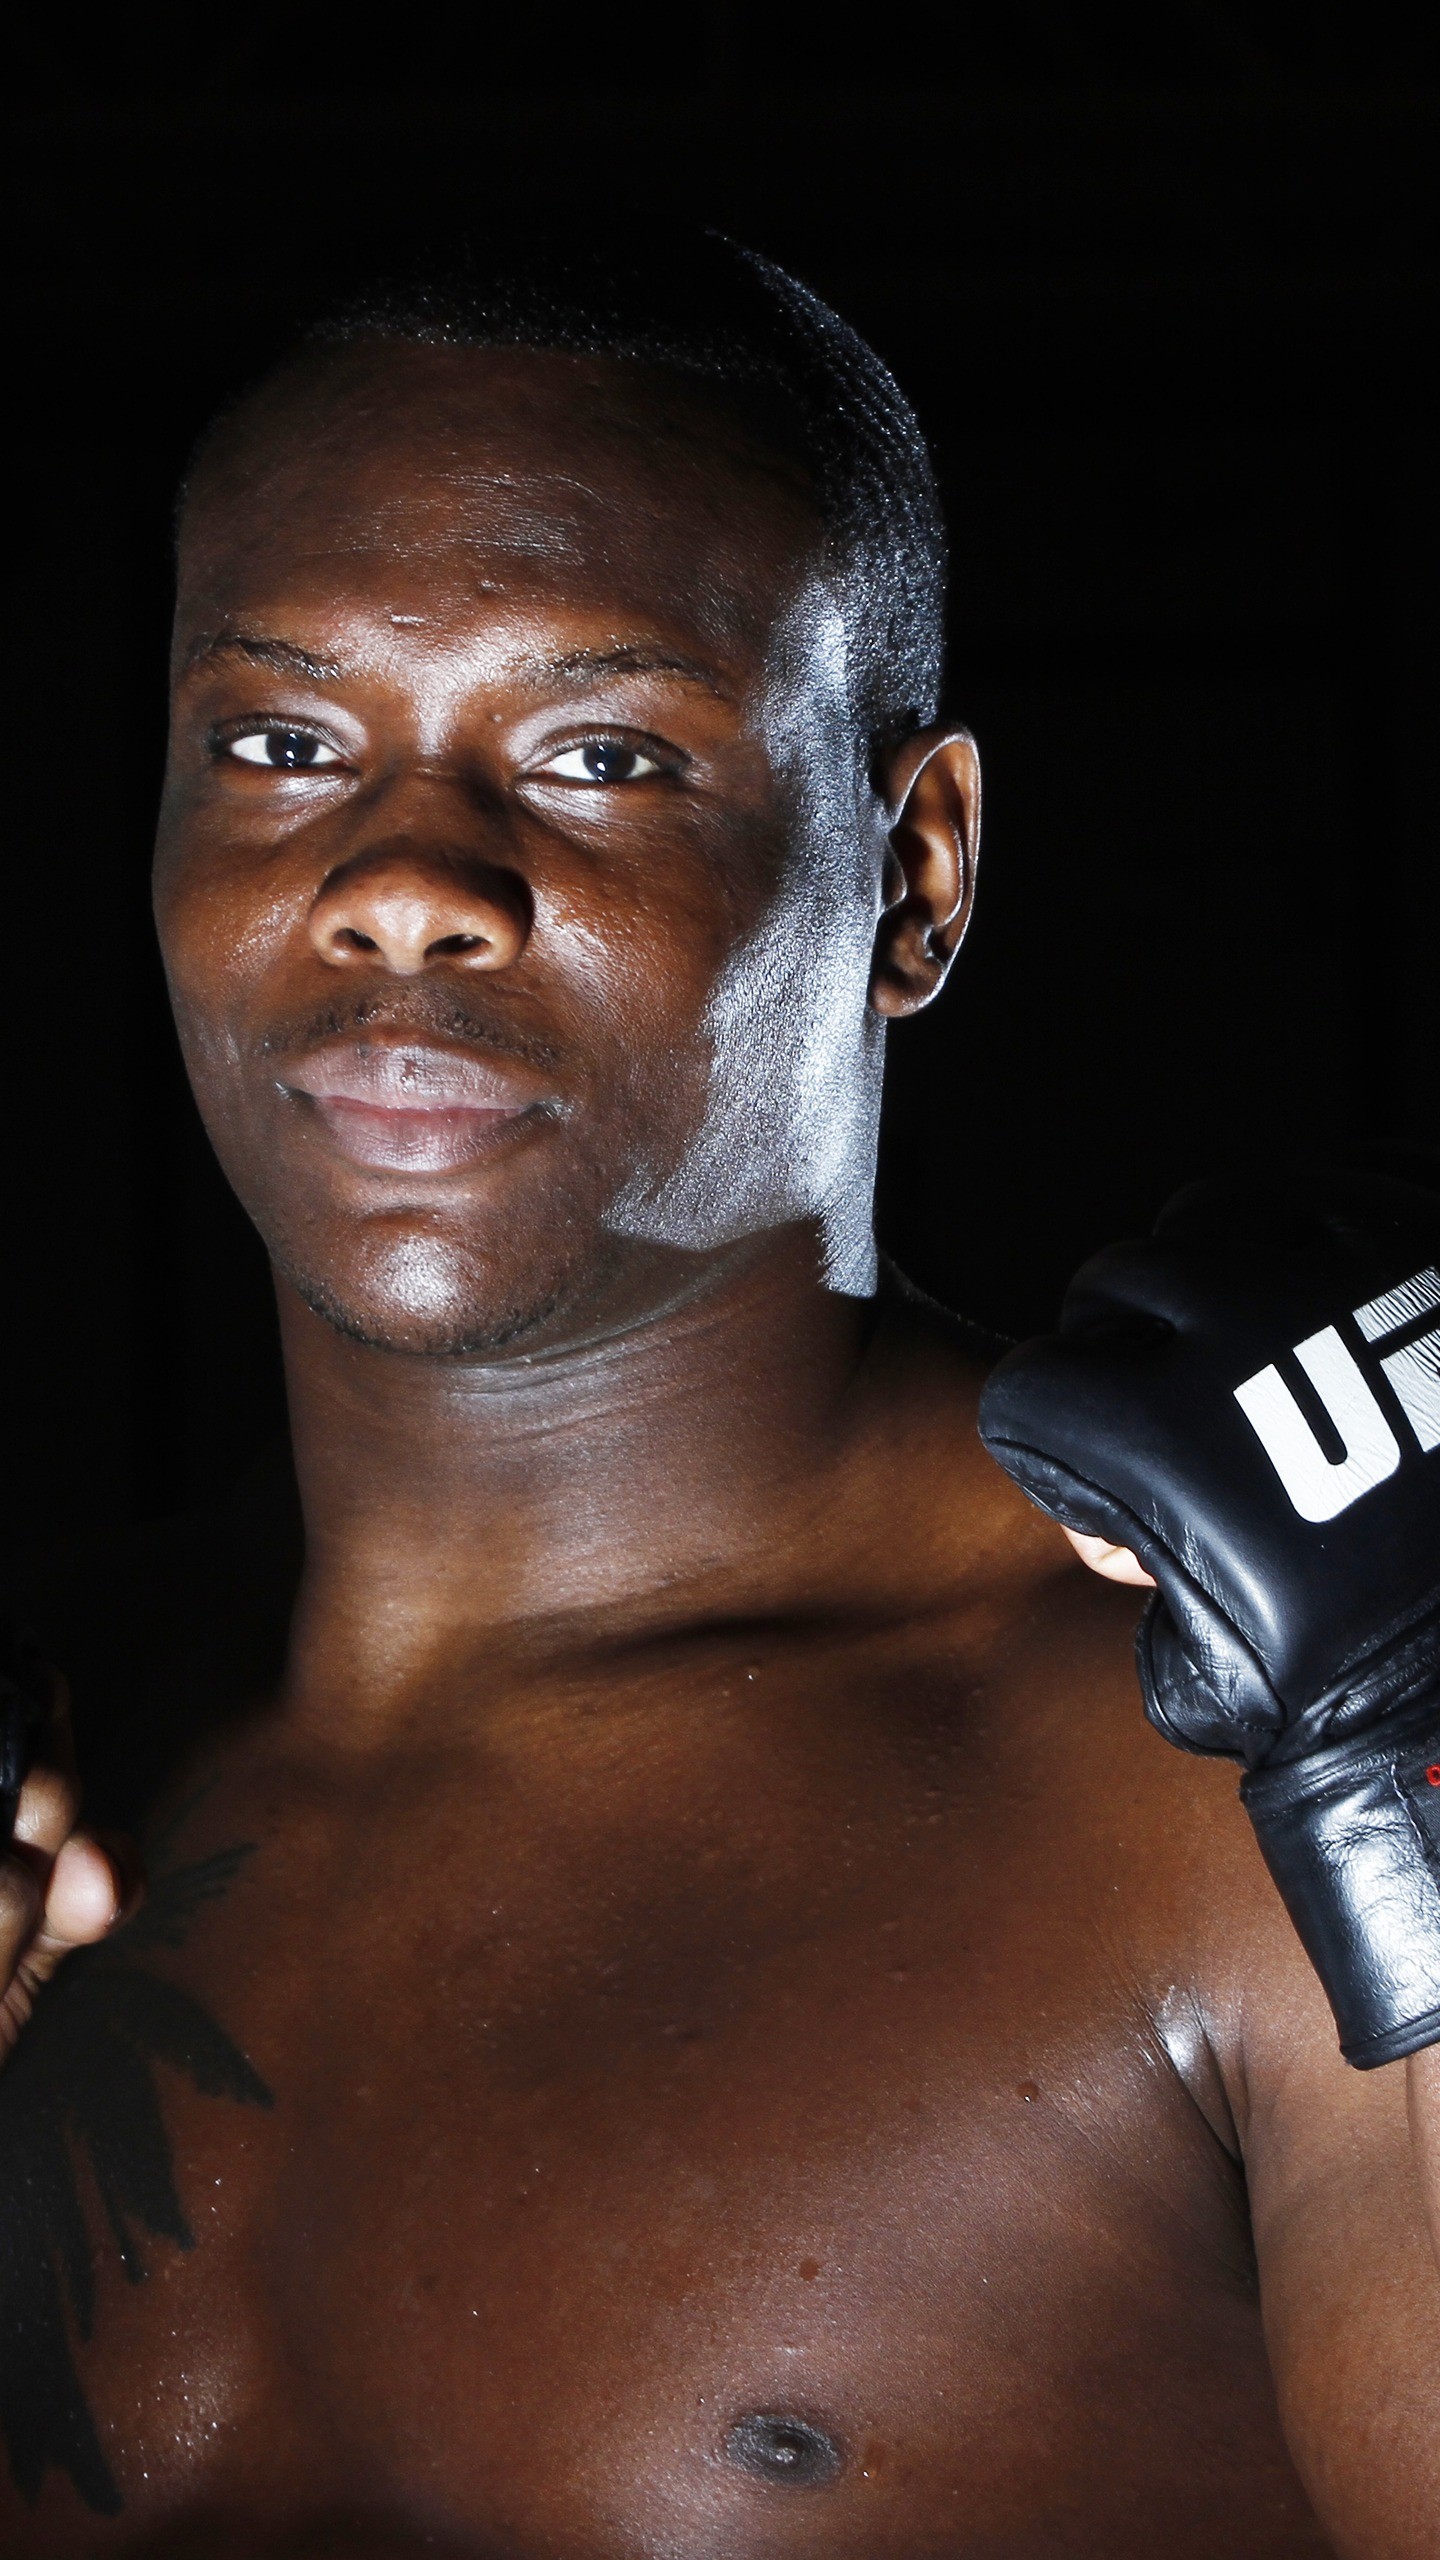 Download wallpaper 1440x2560 ovince saint preux ultimate fighting 1440x2560